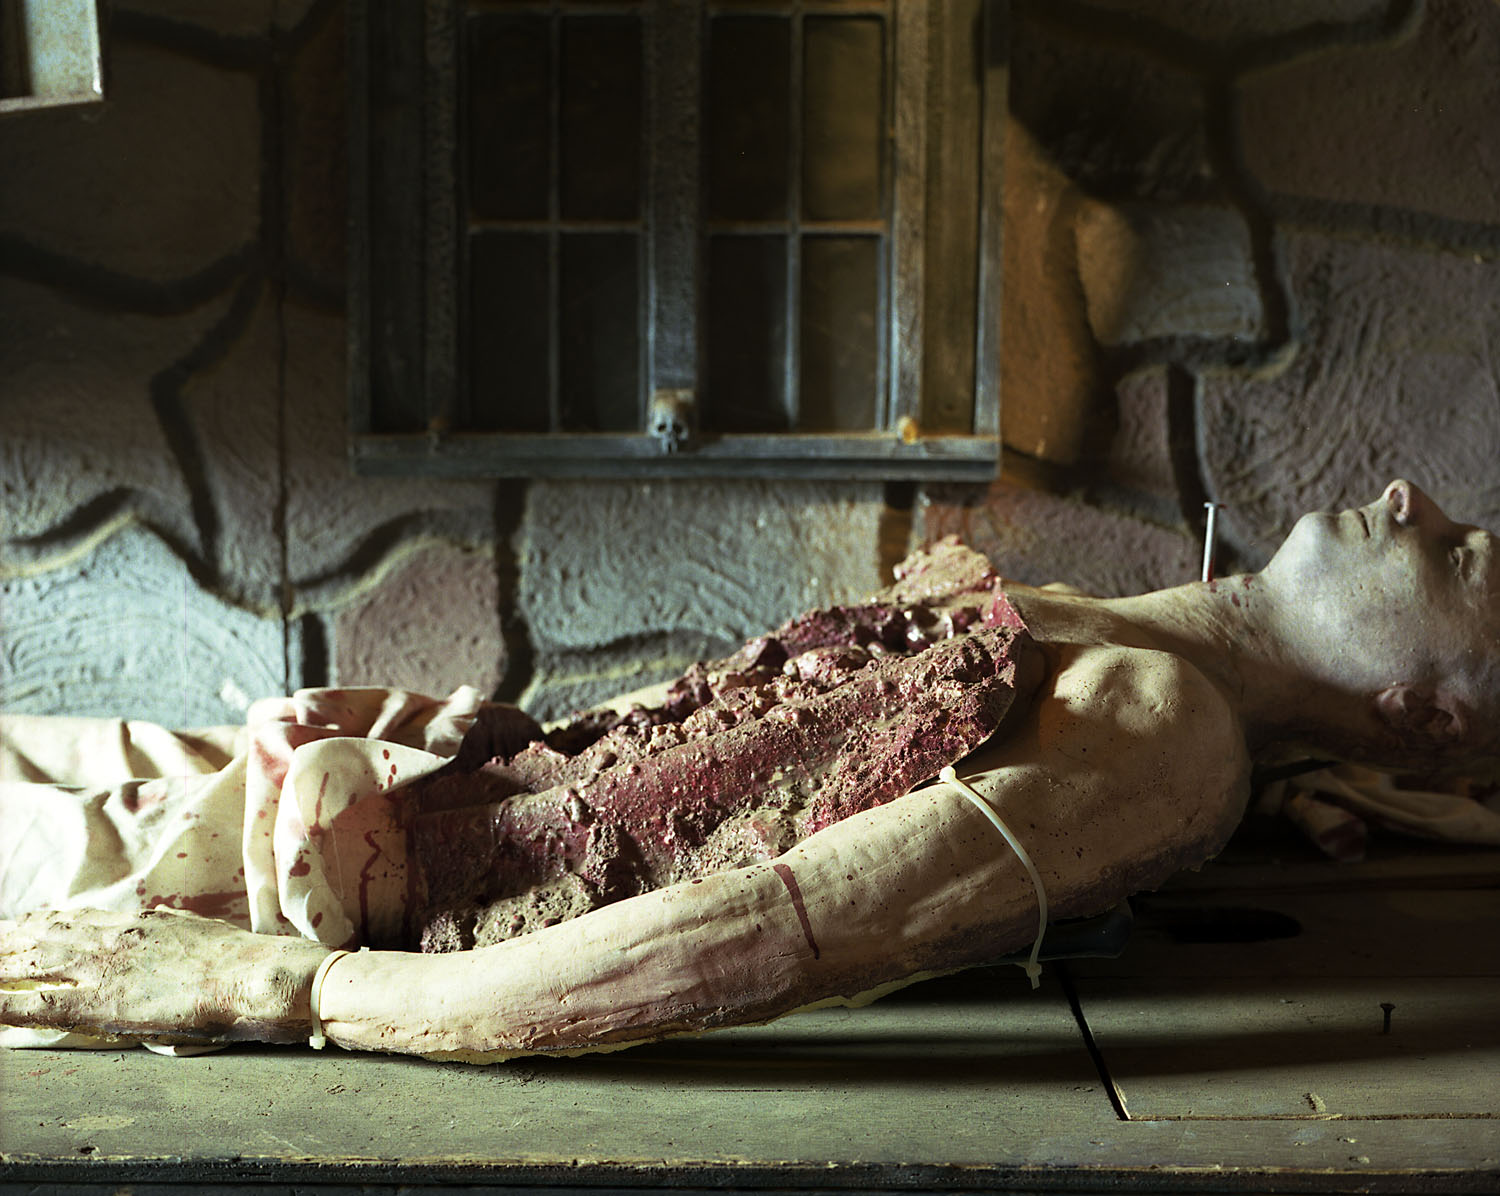 Eviscerated body on table                               Darkside Haunted House, Wading River, Long Island, N.Y., 2005